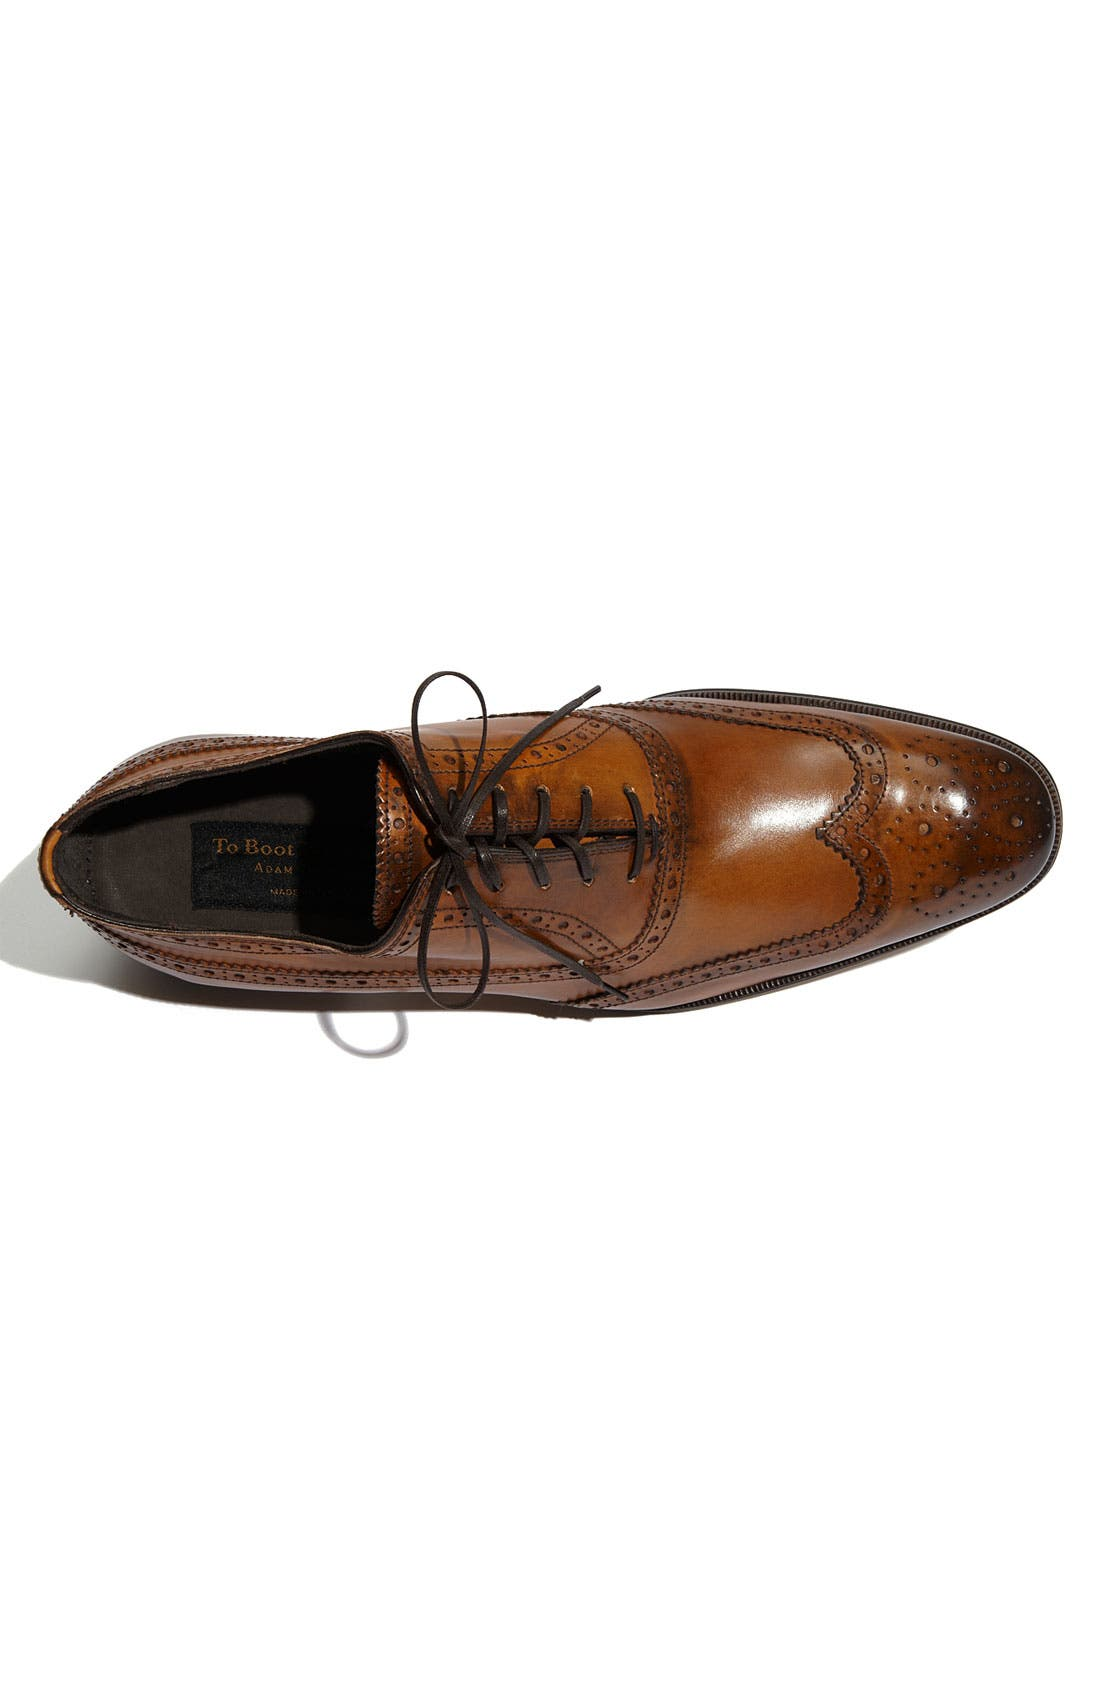 Alternate Image 3  - To Boot New York 'Windsor' Wingtip Oxford (Men)